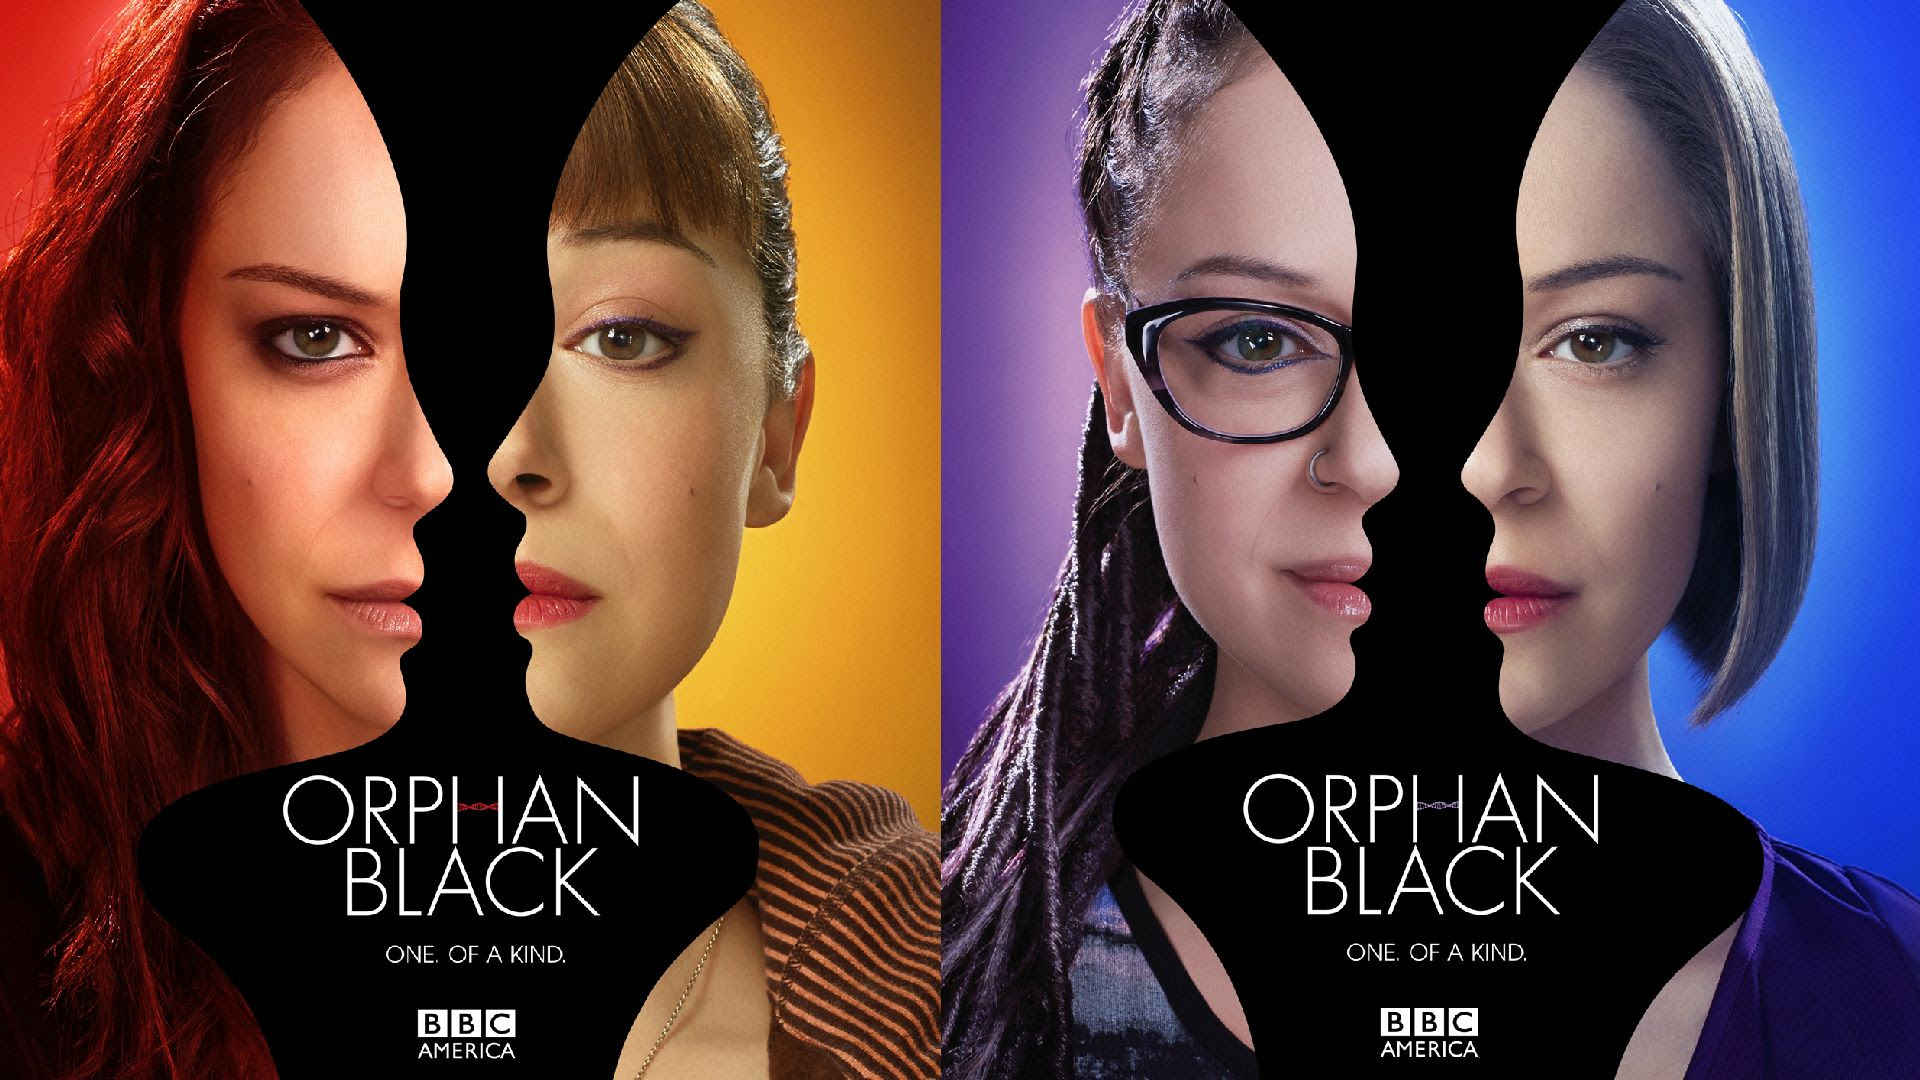 Orphan Black Wallpapers Anyone Have Some Good Ones Here S The